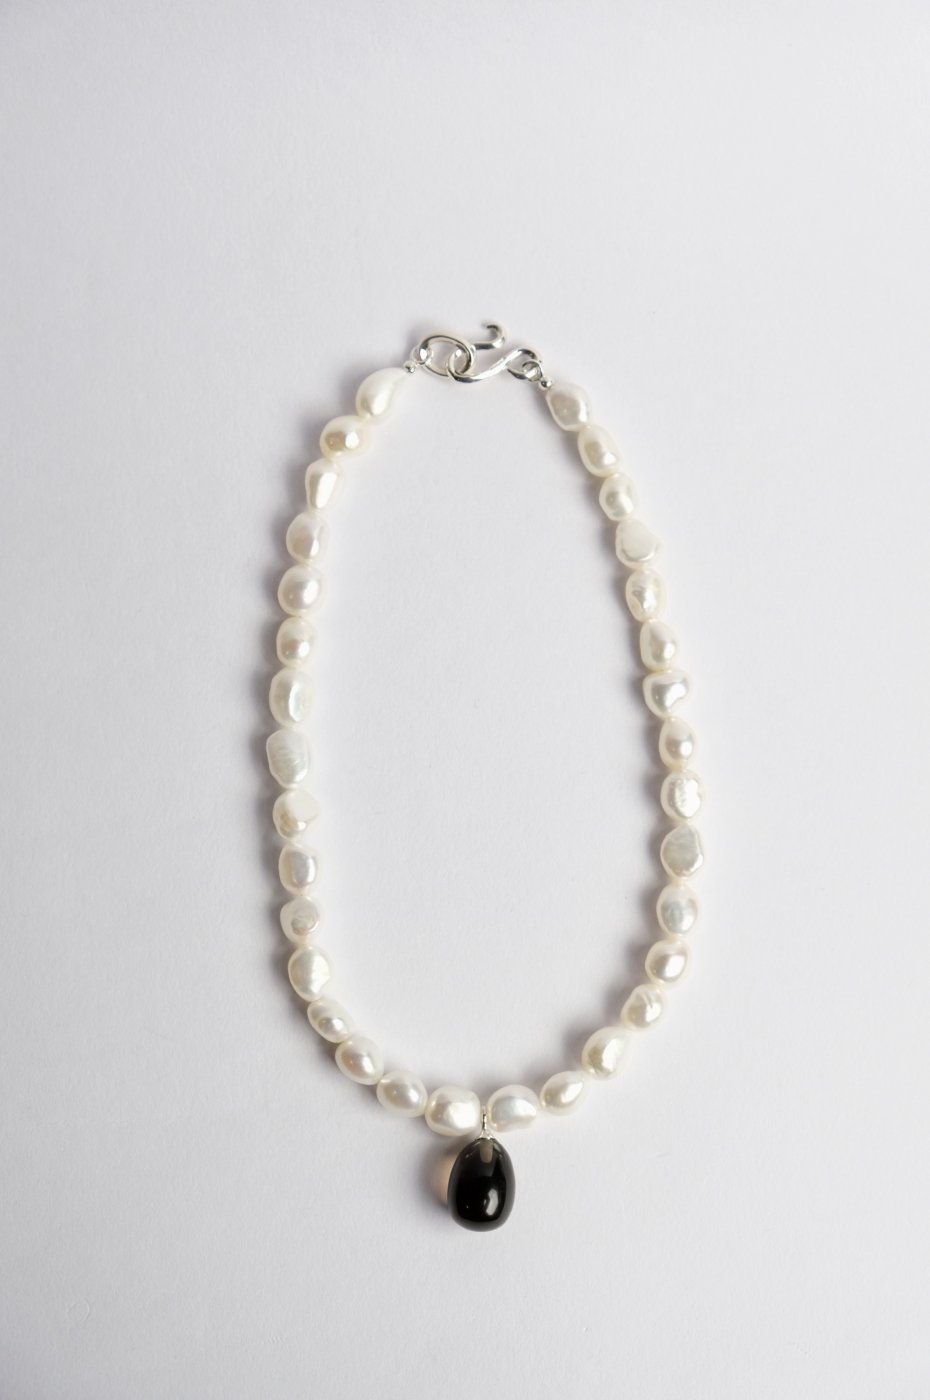 <img class='new_mark_img1' src='https://img.shop-pro.jp/img/new/icons56.gif' style='border:none;display:inline;margin:0px;padding:0px;width:auto;' />R.ALAGAN -JACQUELINE NECKLACE